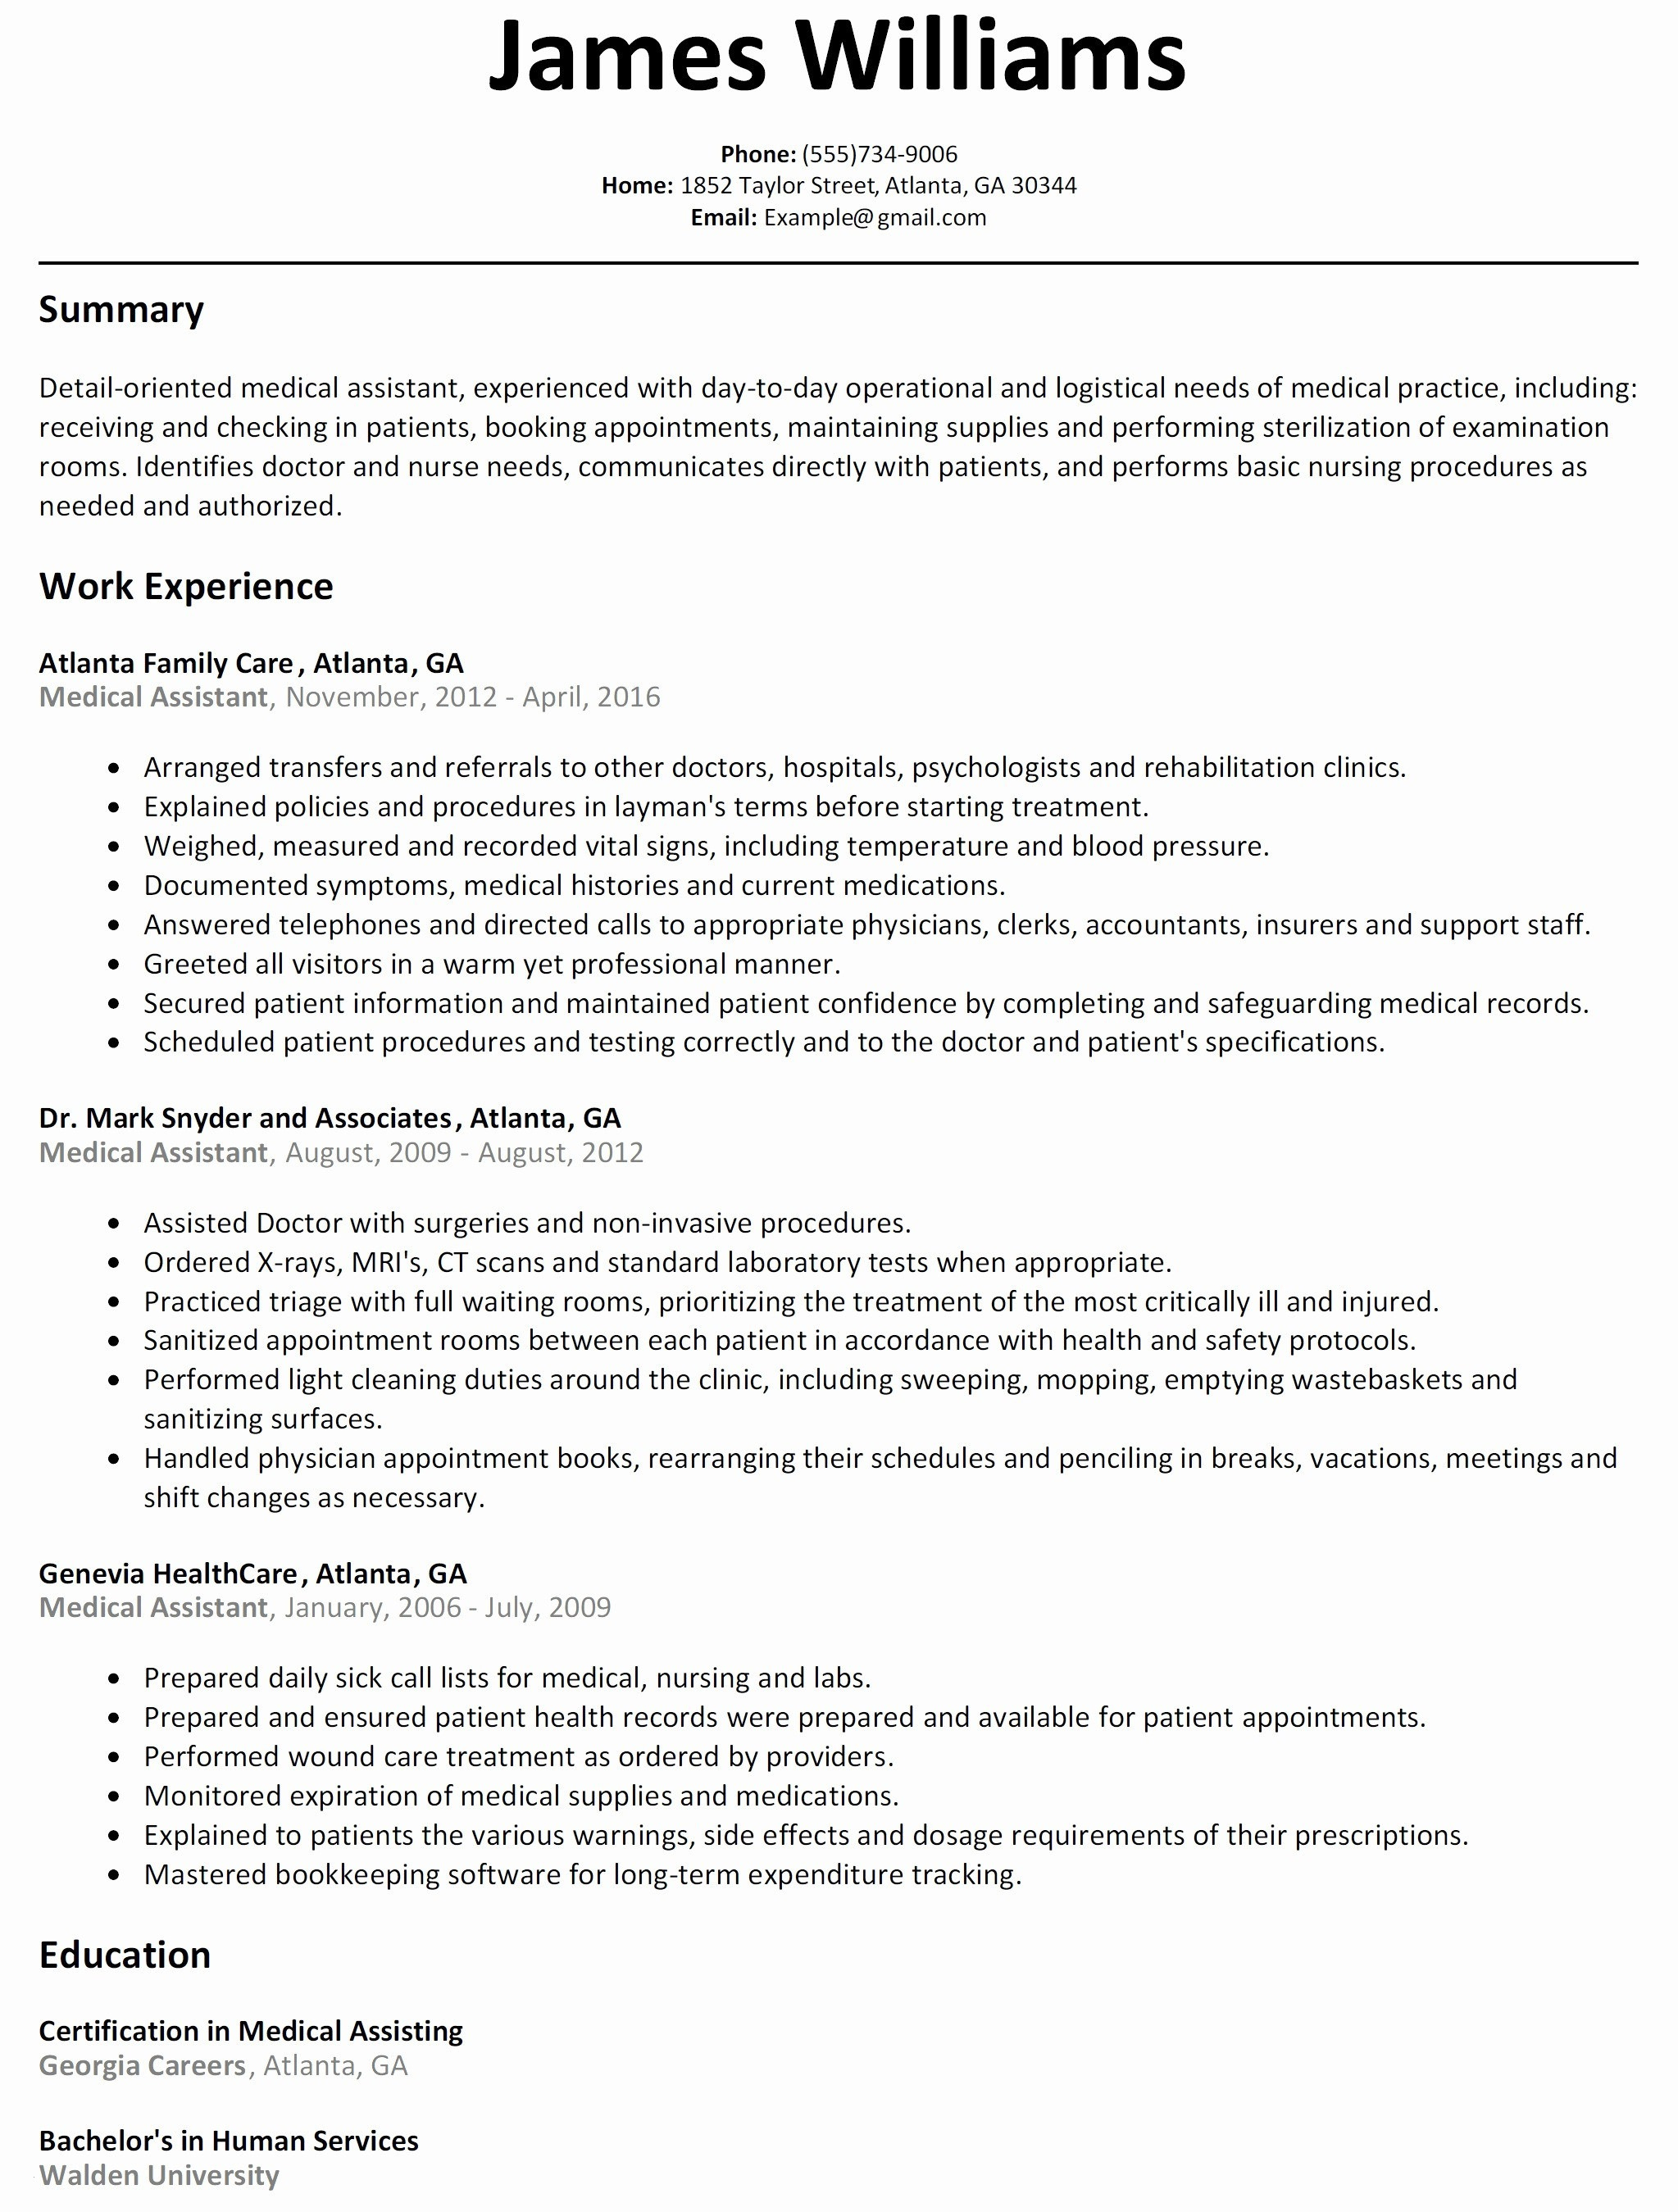 Traditional Resume Template - Traditional Resume Template Word Paragraphrewriter